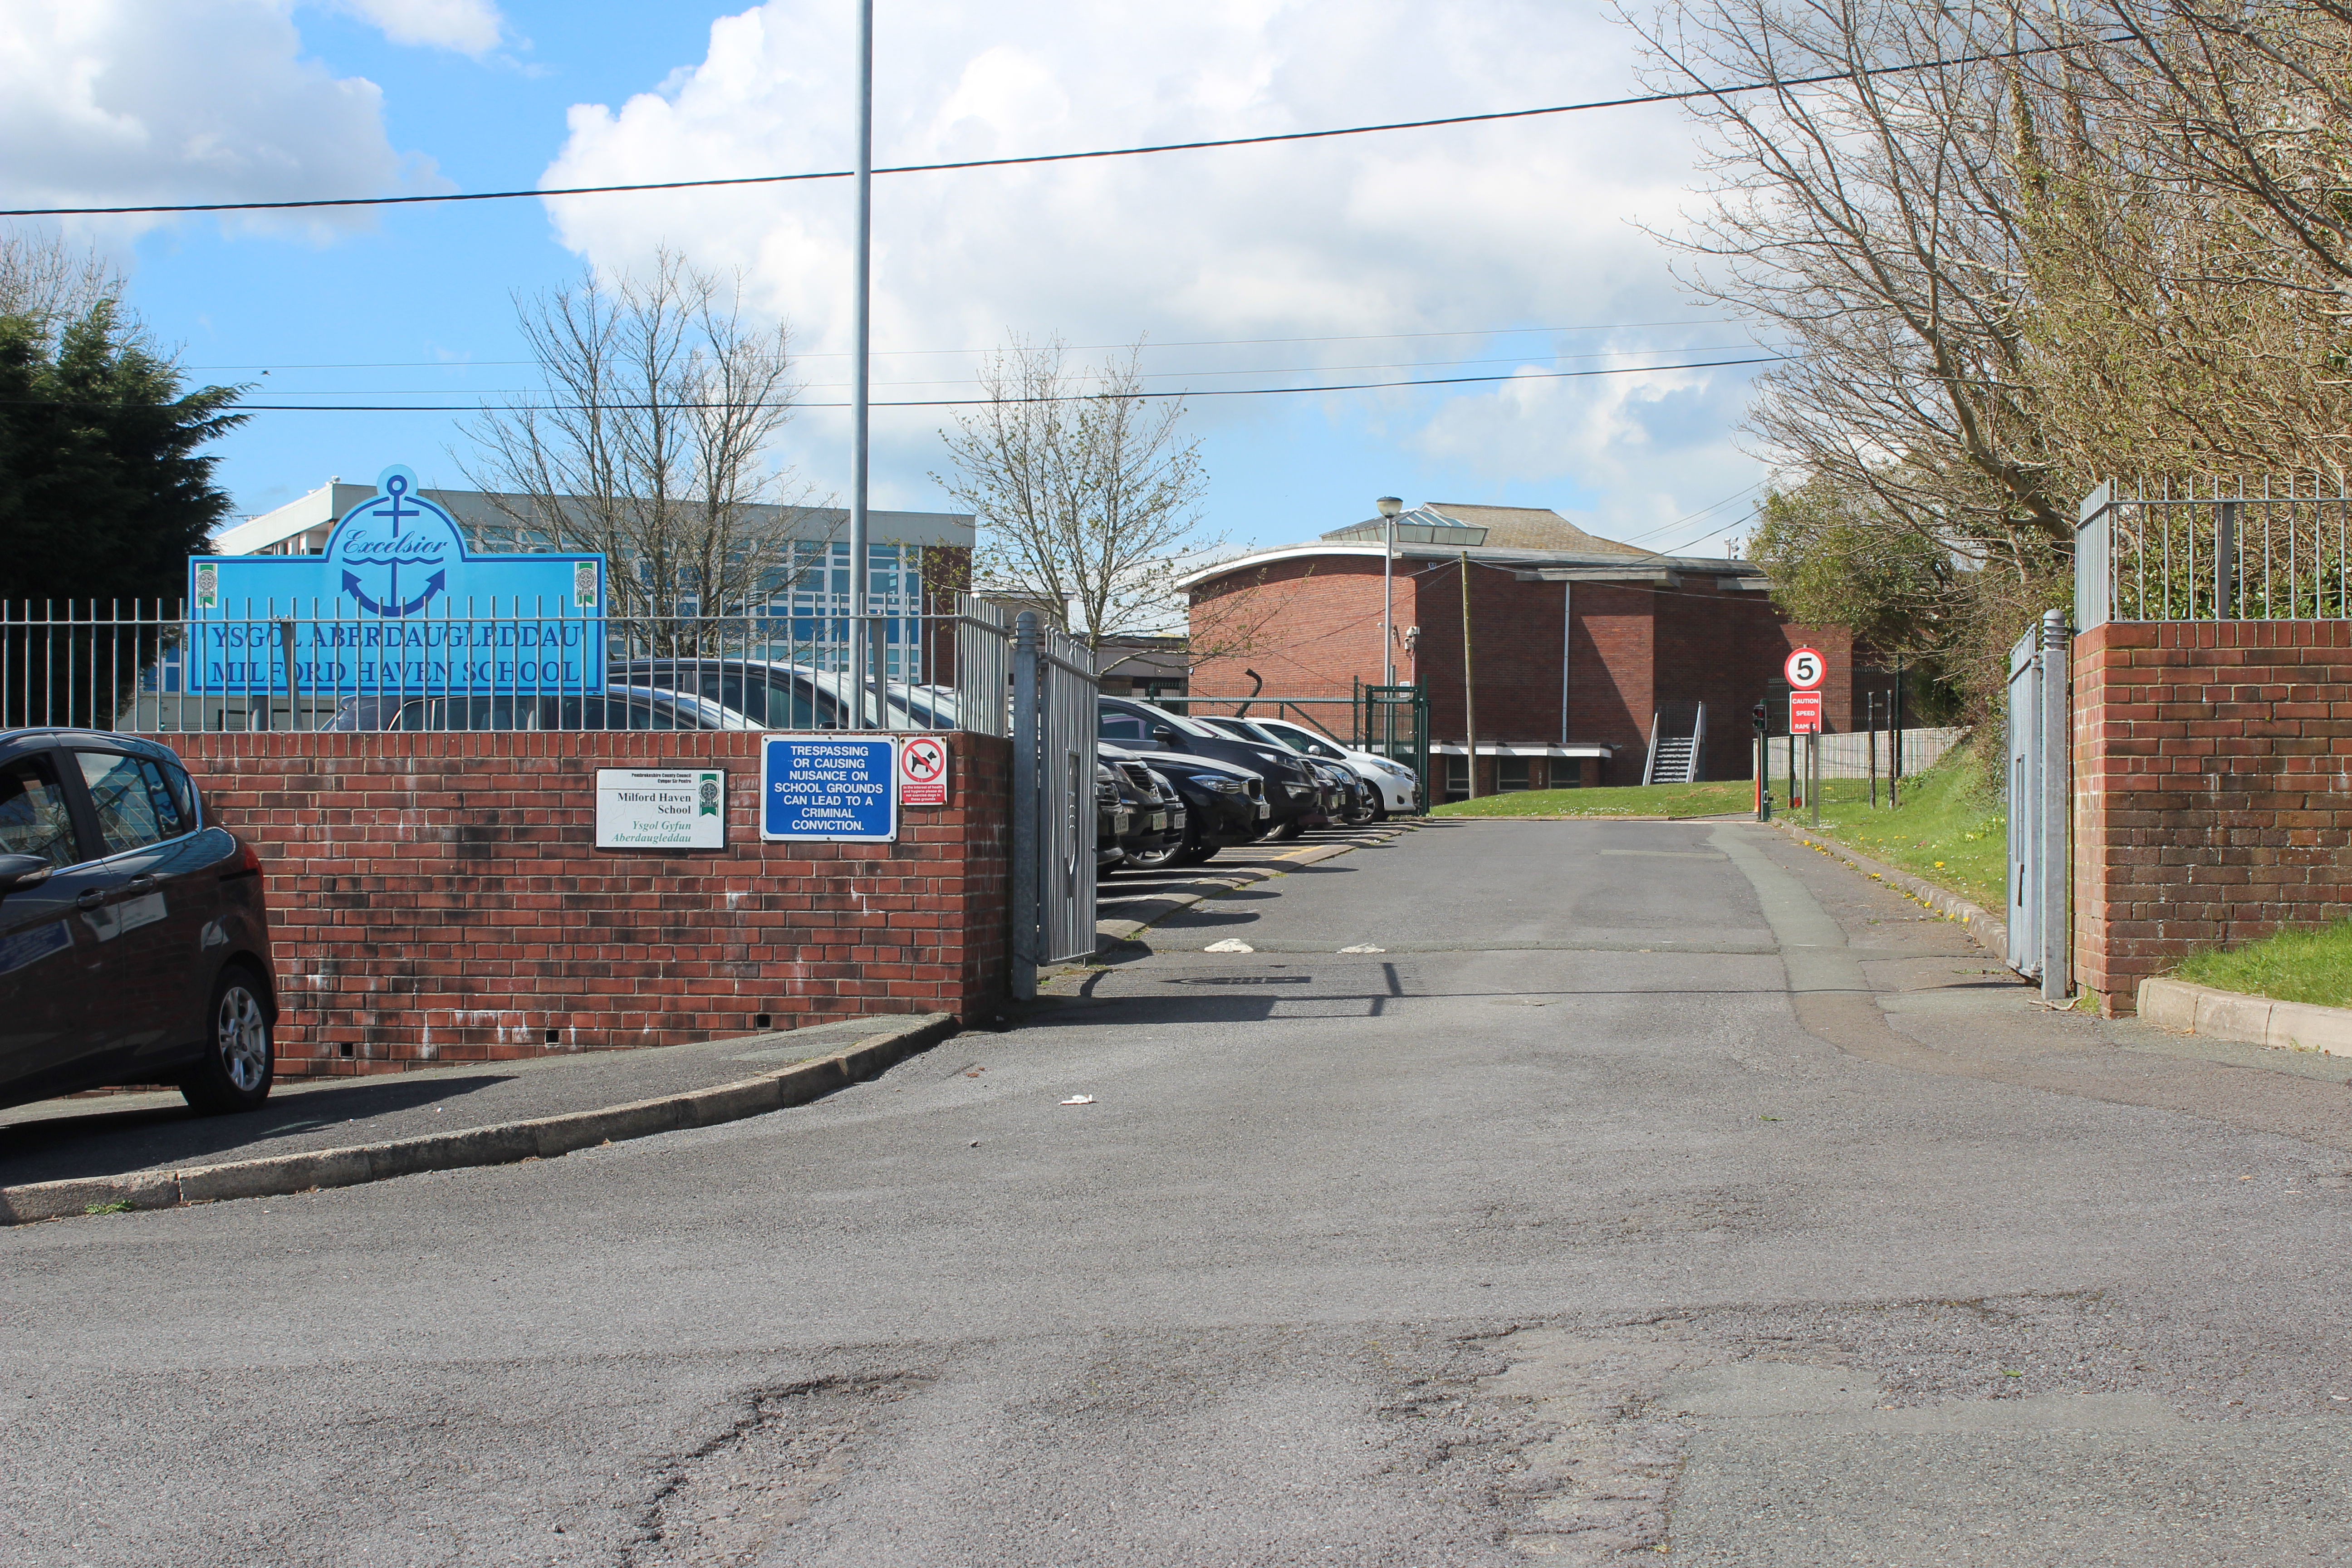 In the afternoon, a visit to the town's comprehensive school